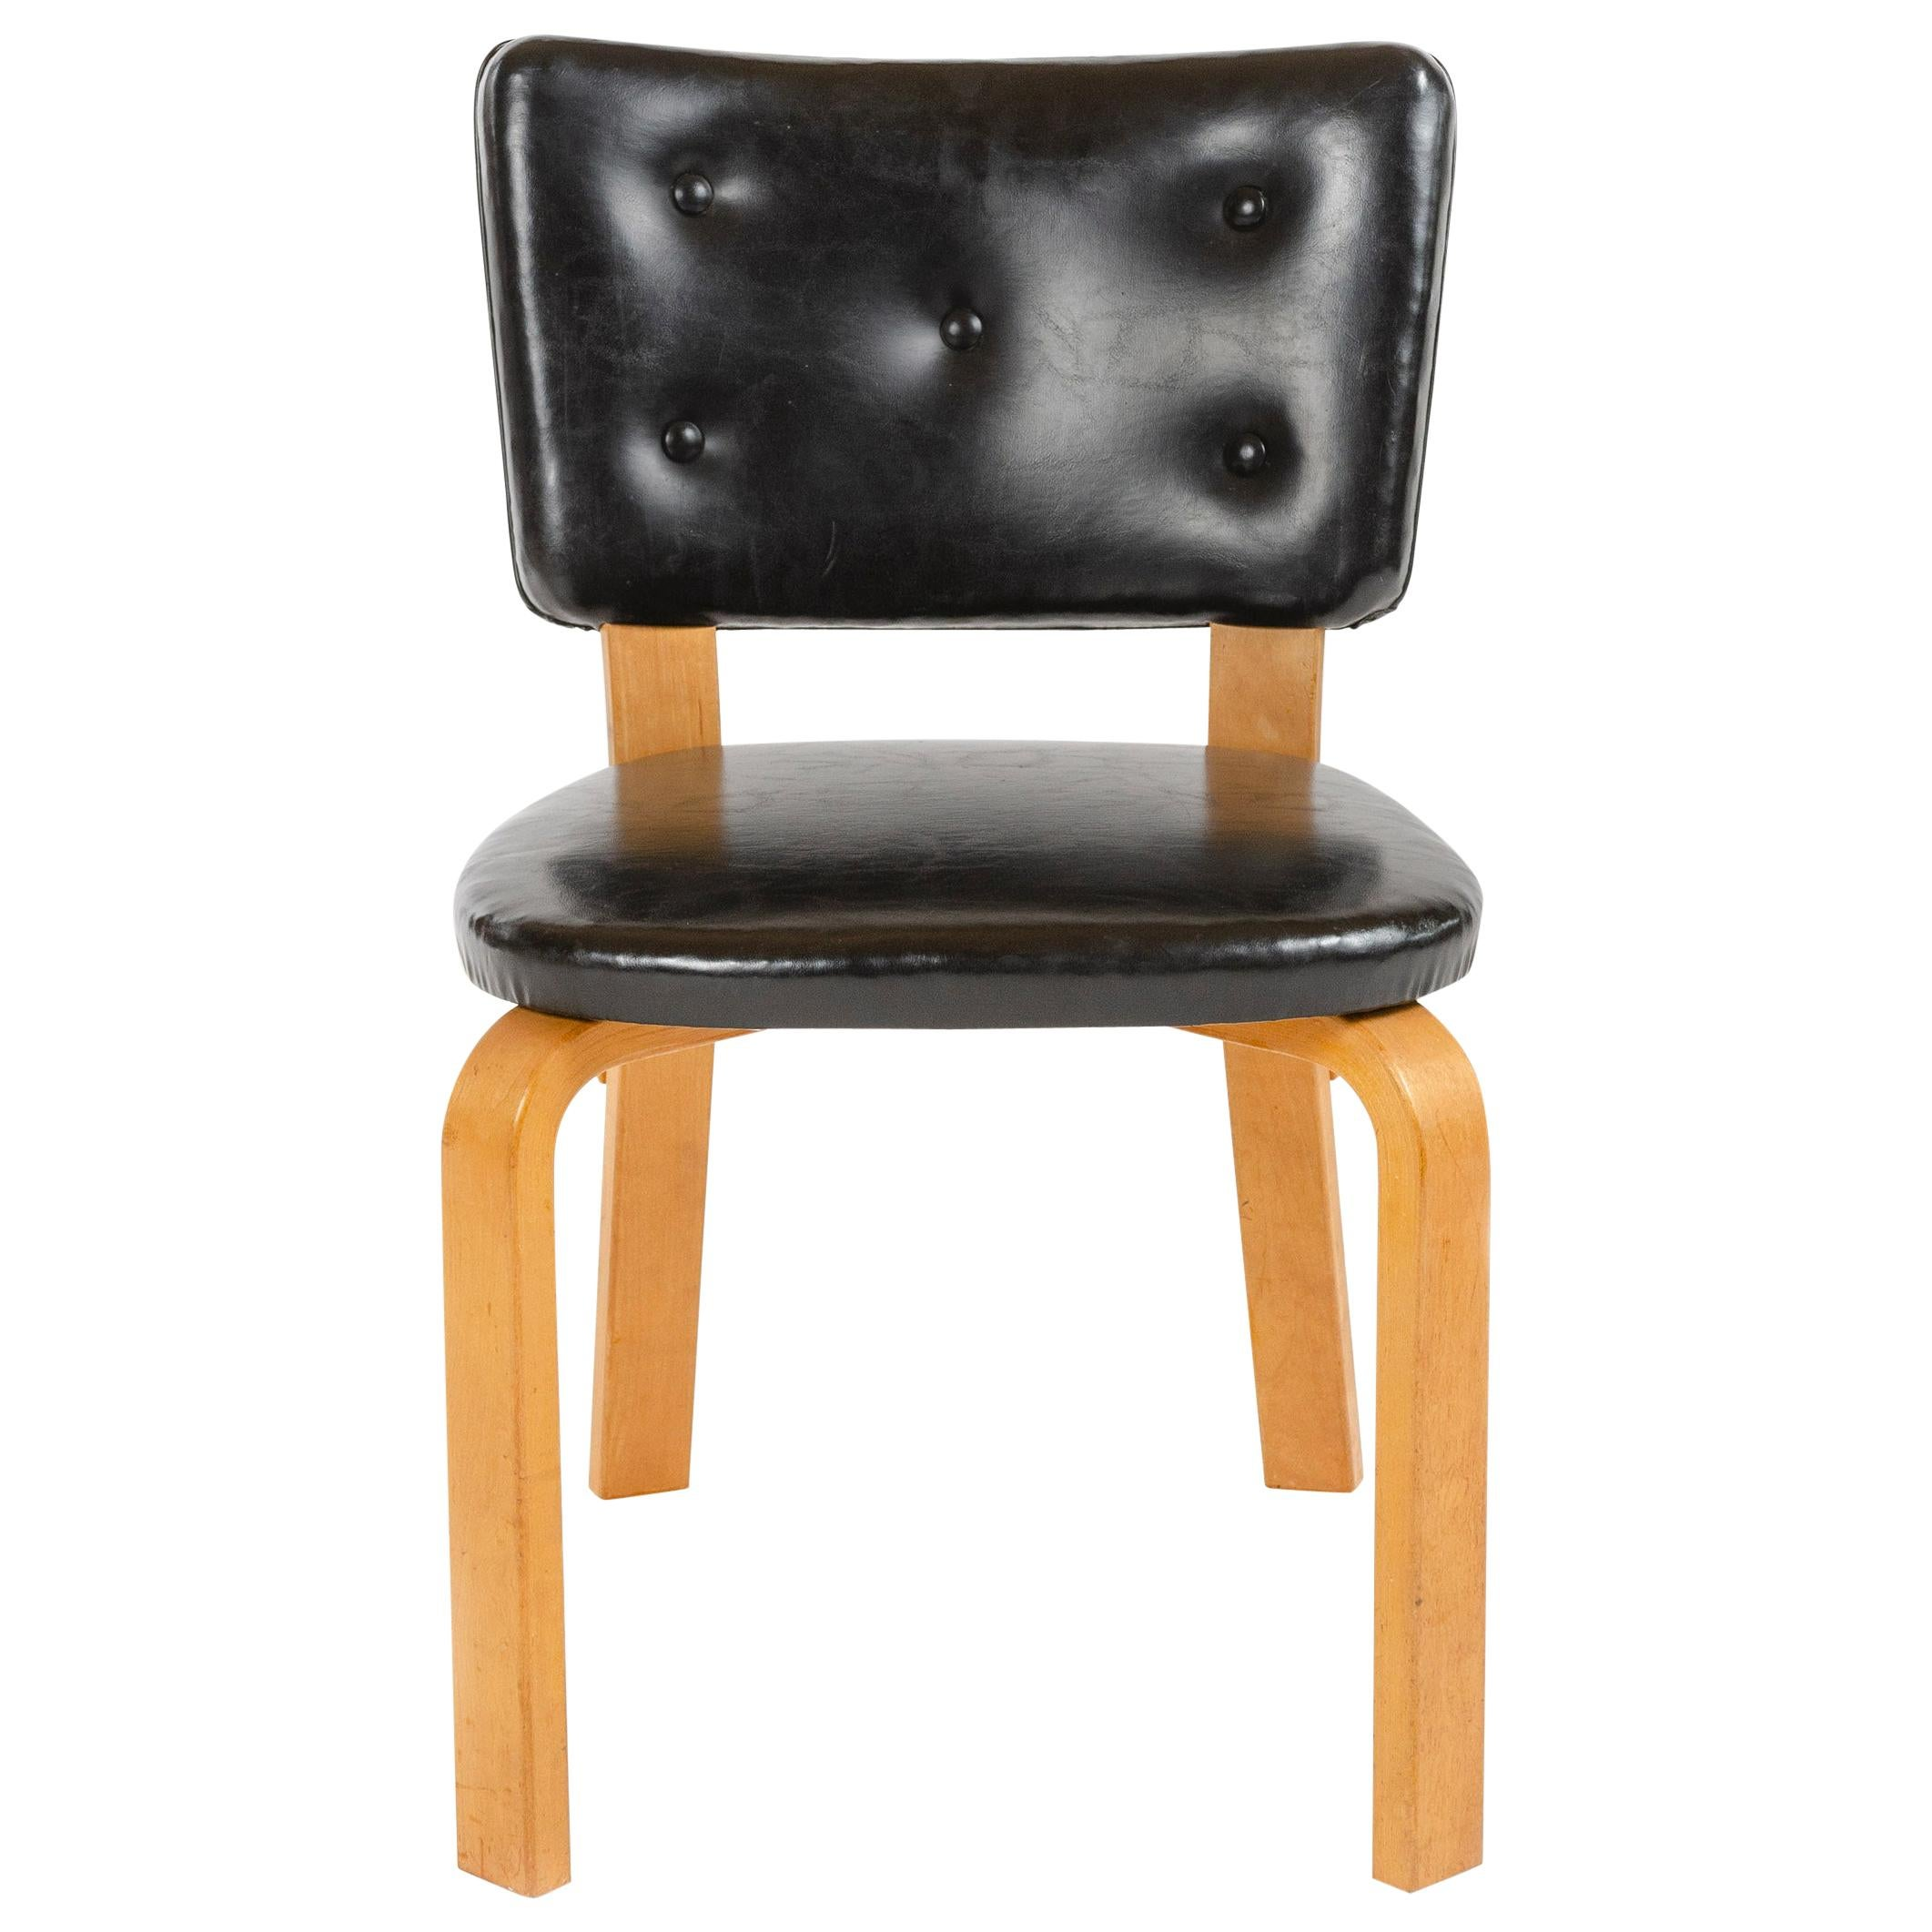 1940s Finnish Dining Chair by Alvar Aalto for Artek